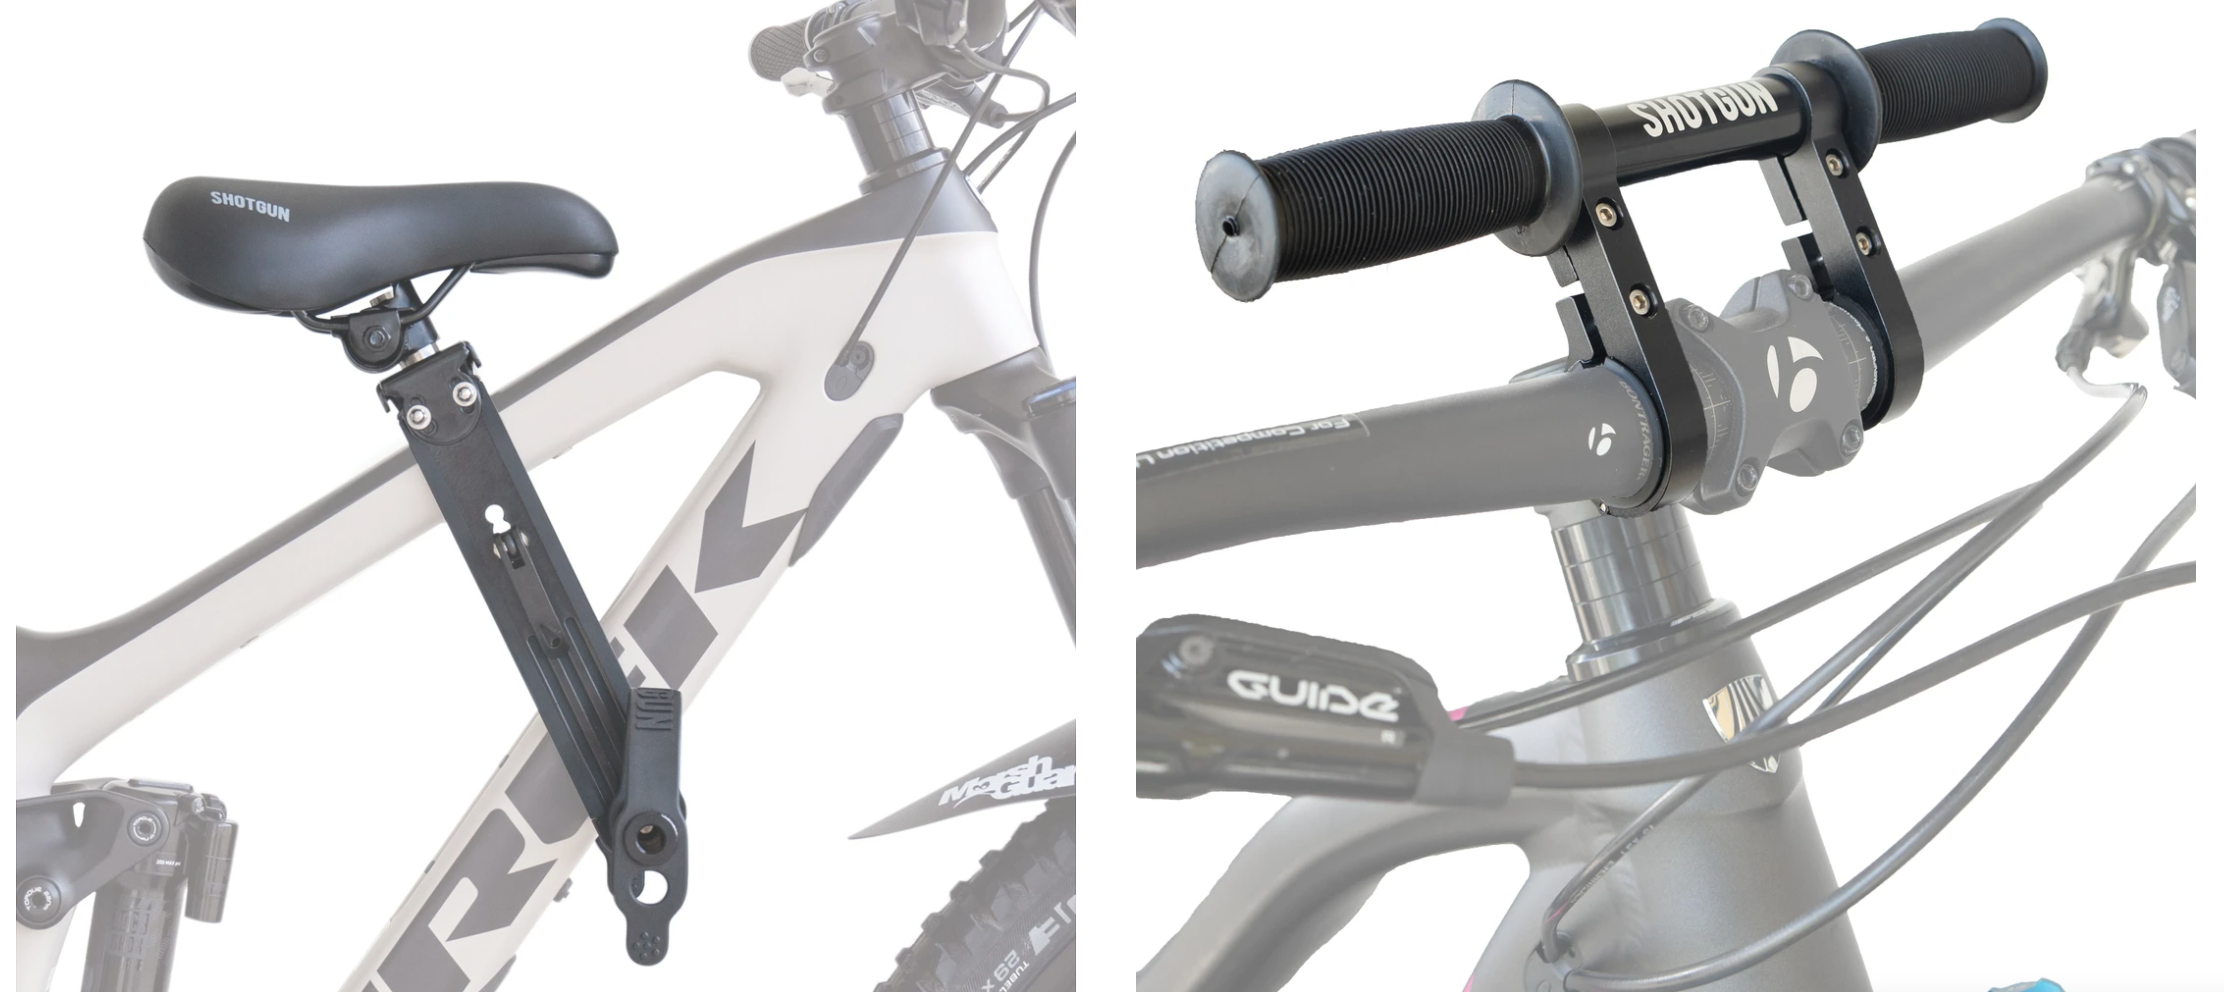 shotgun childs seat and handlebar add on shown on an adults mountain bike